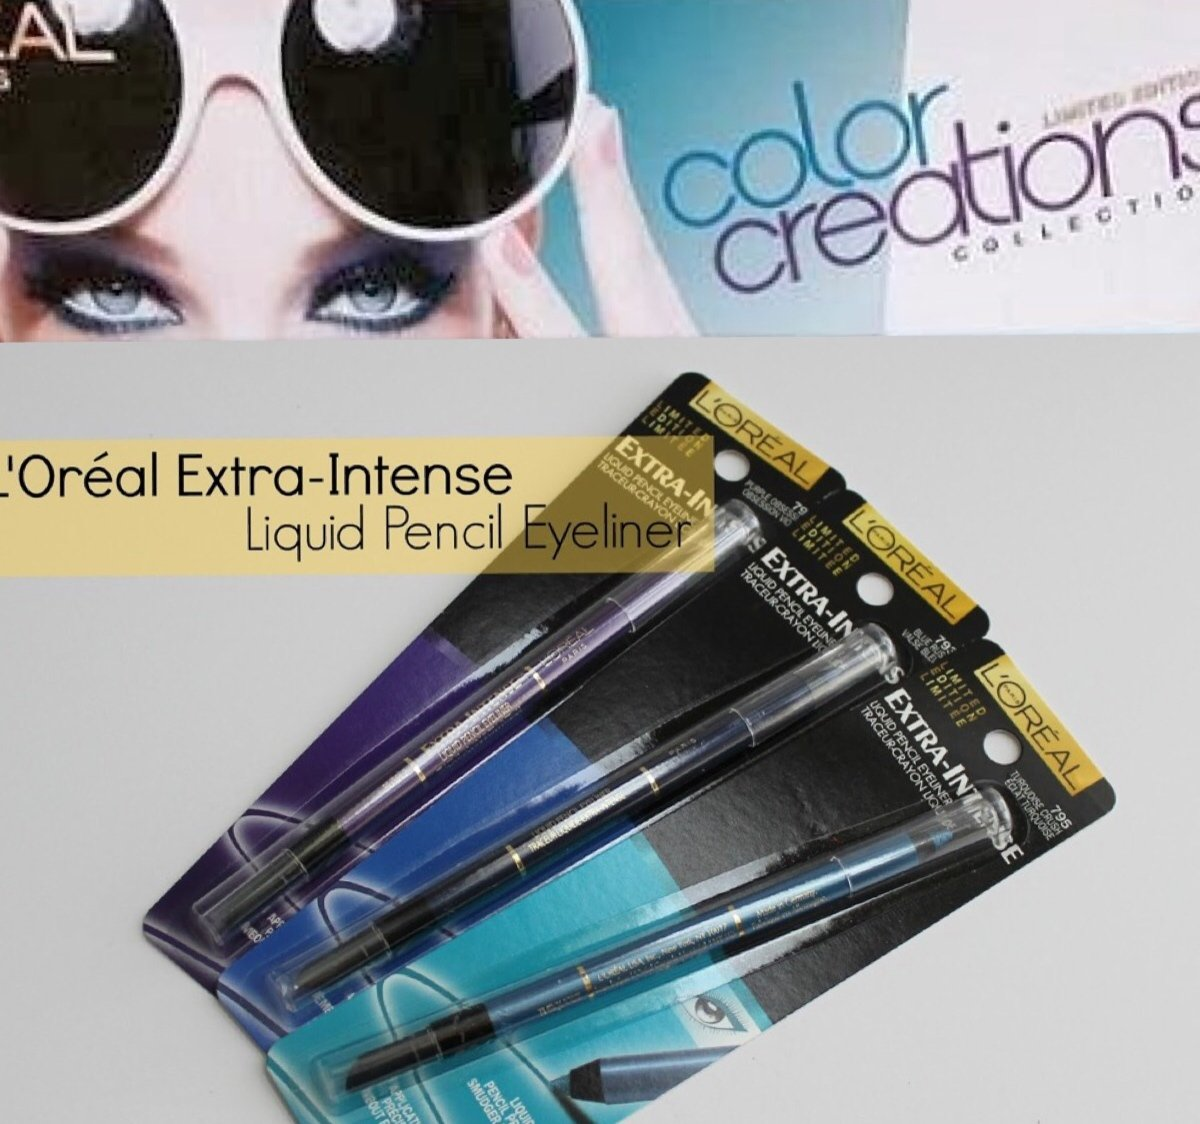 3 L'oreal Extra-Intense Liquid Pencil Eyeliner Color Creations Collection Set